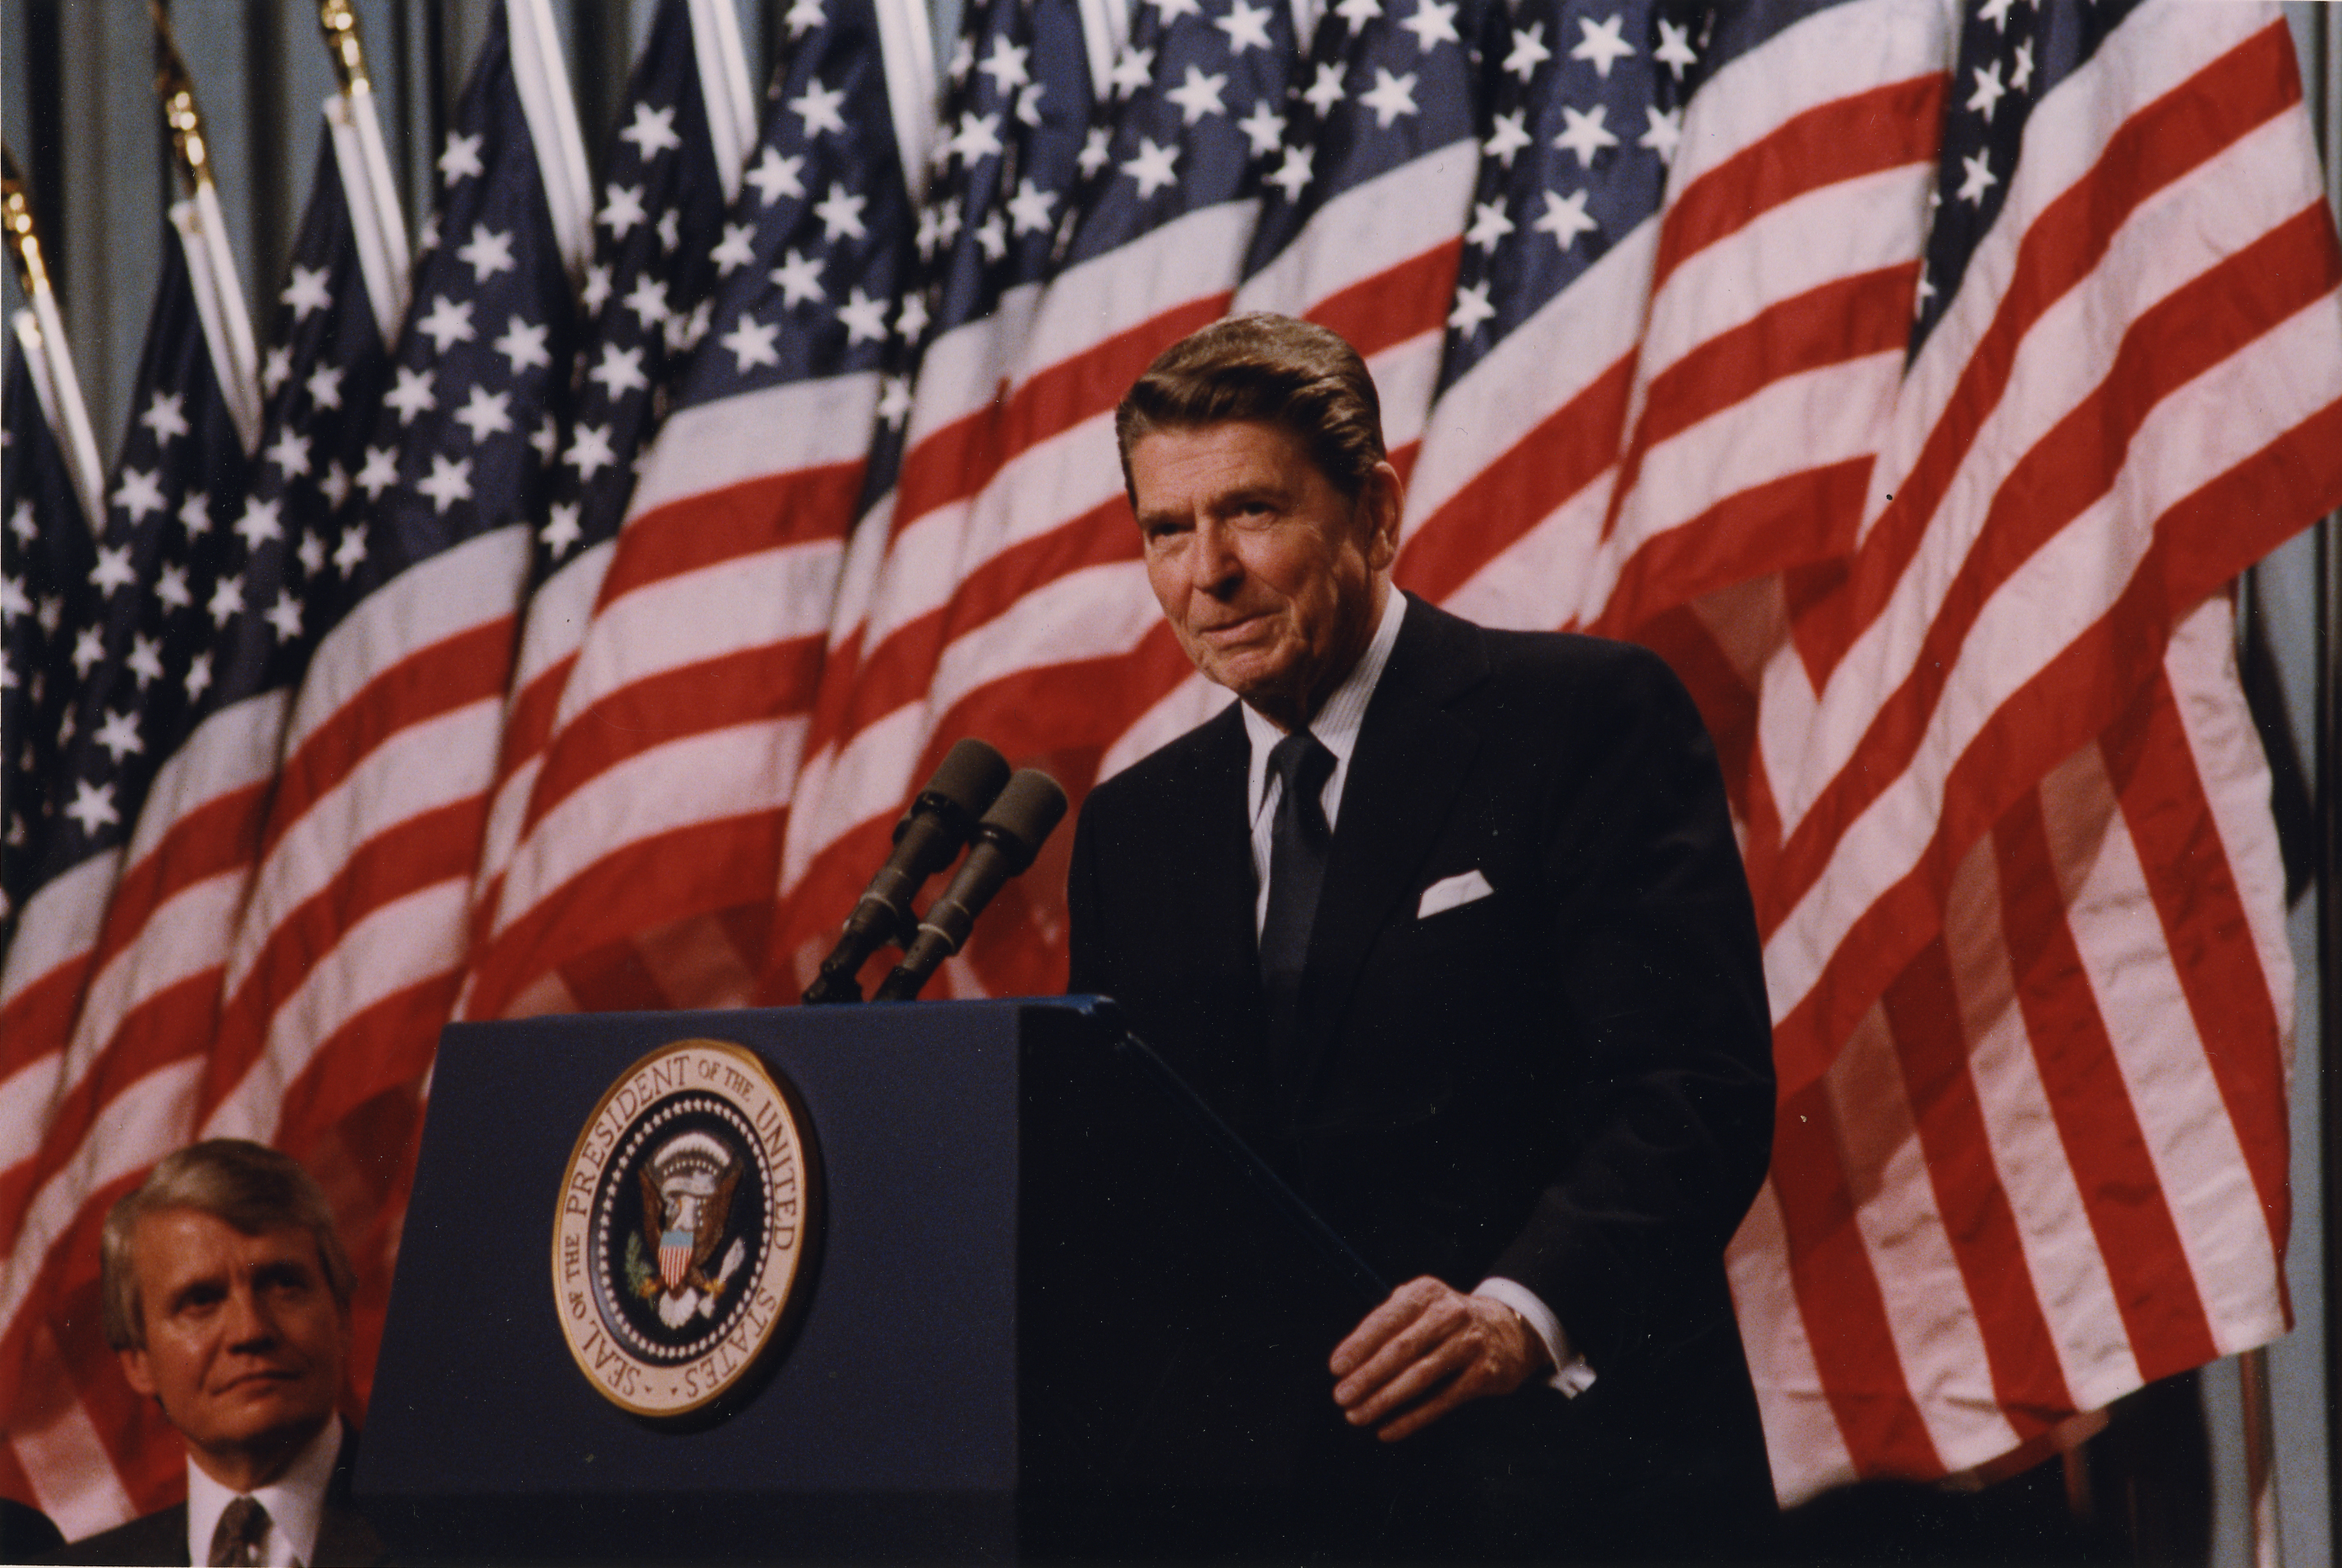 ronald reagan bad president essay